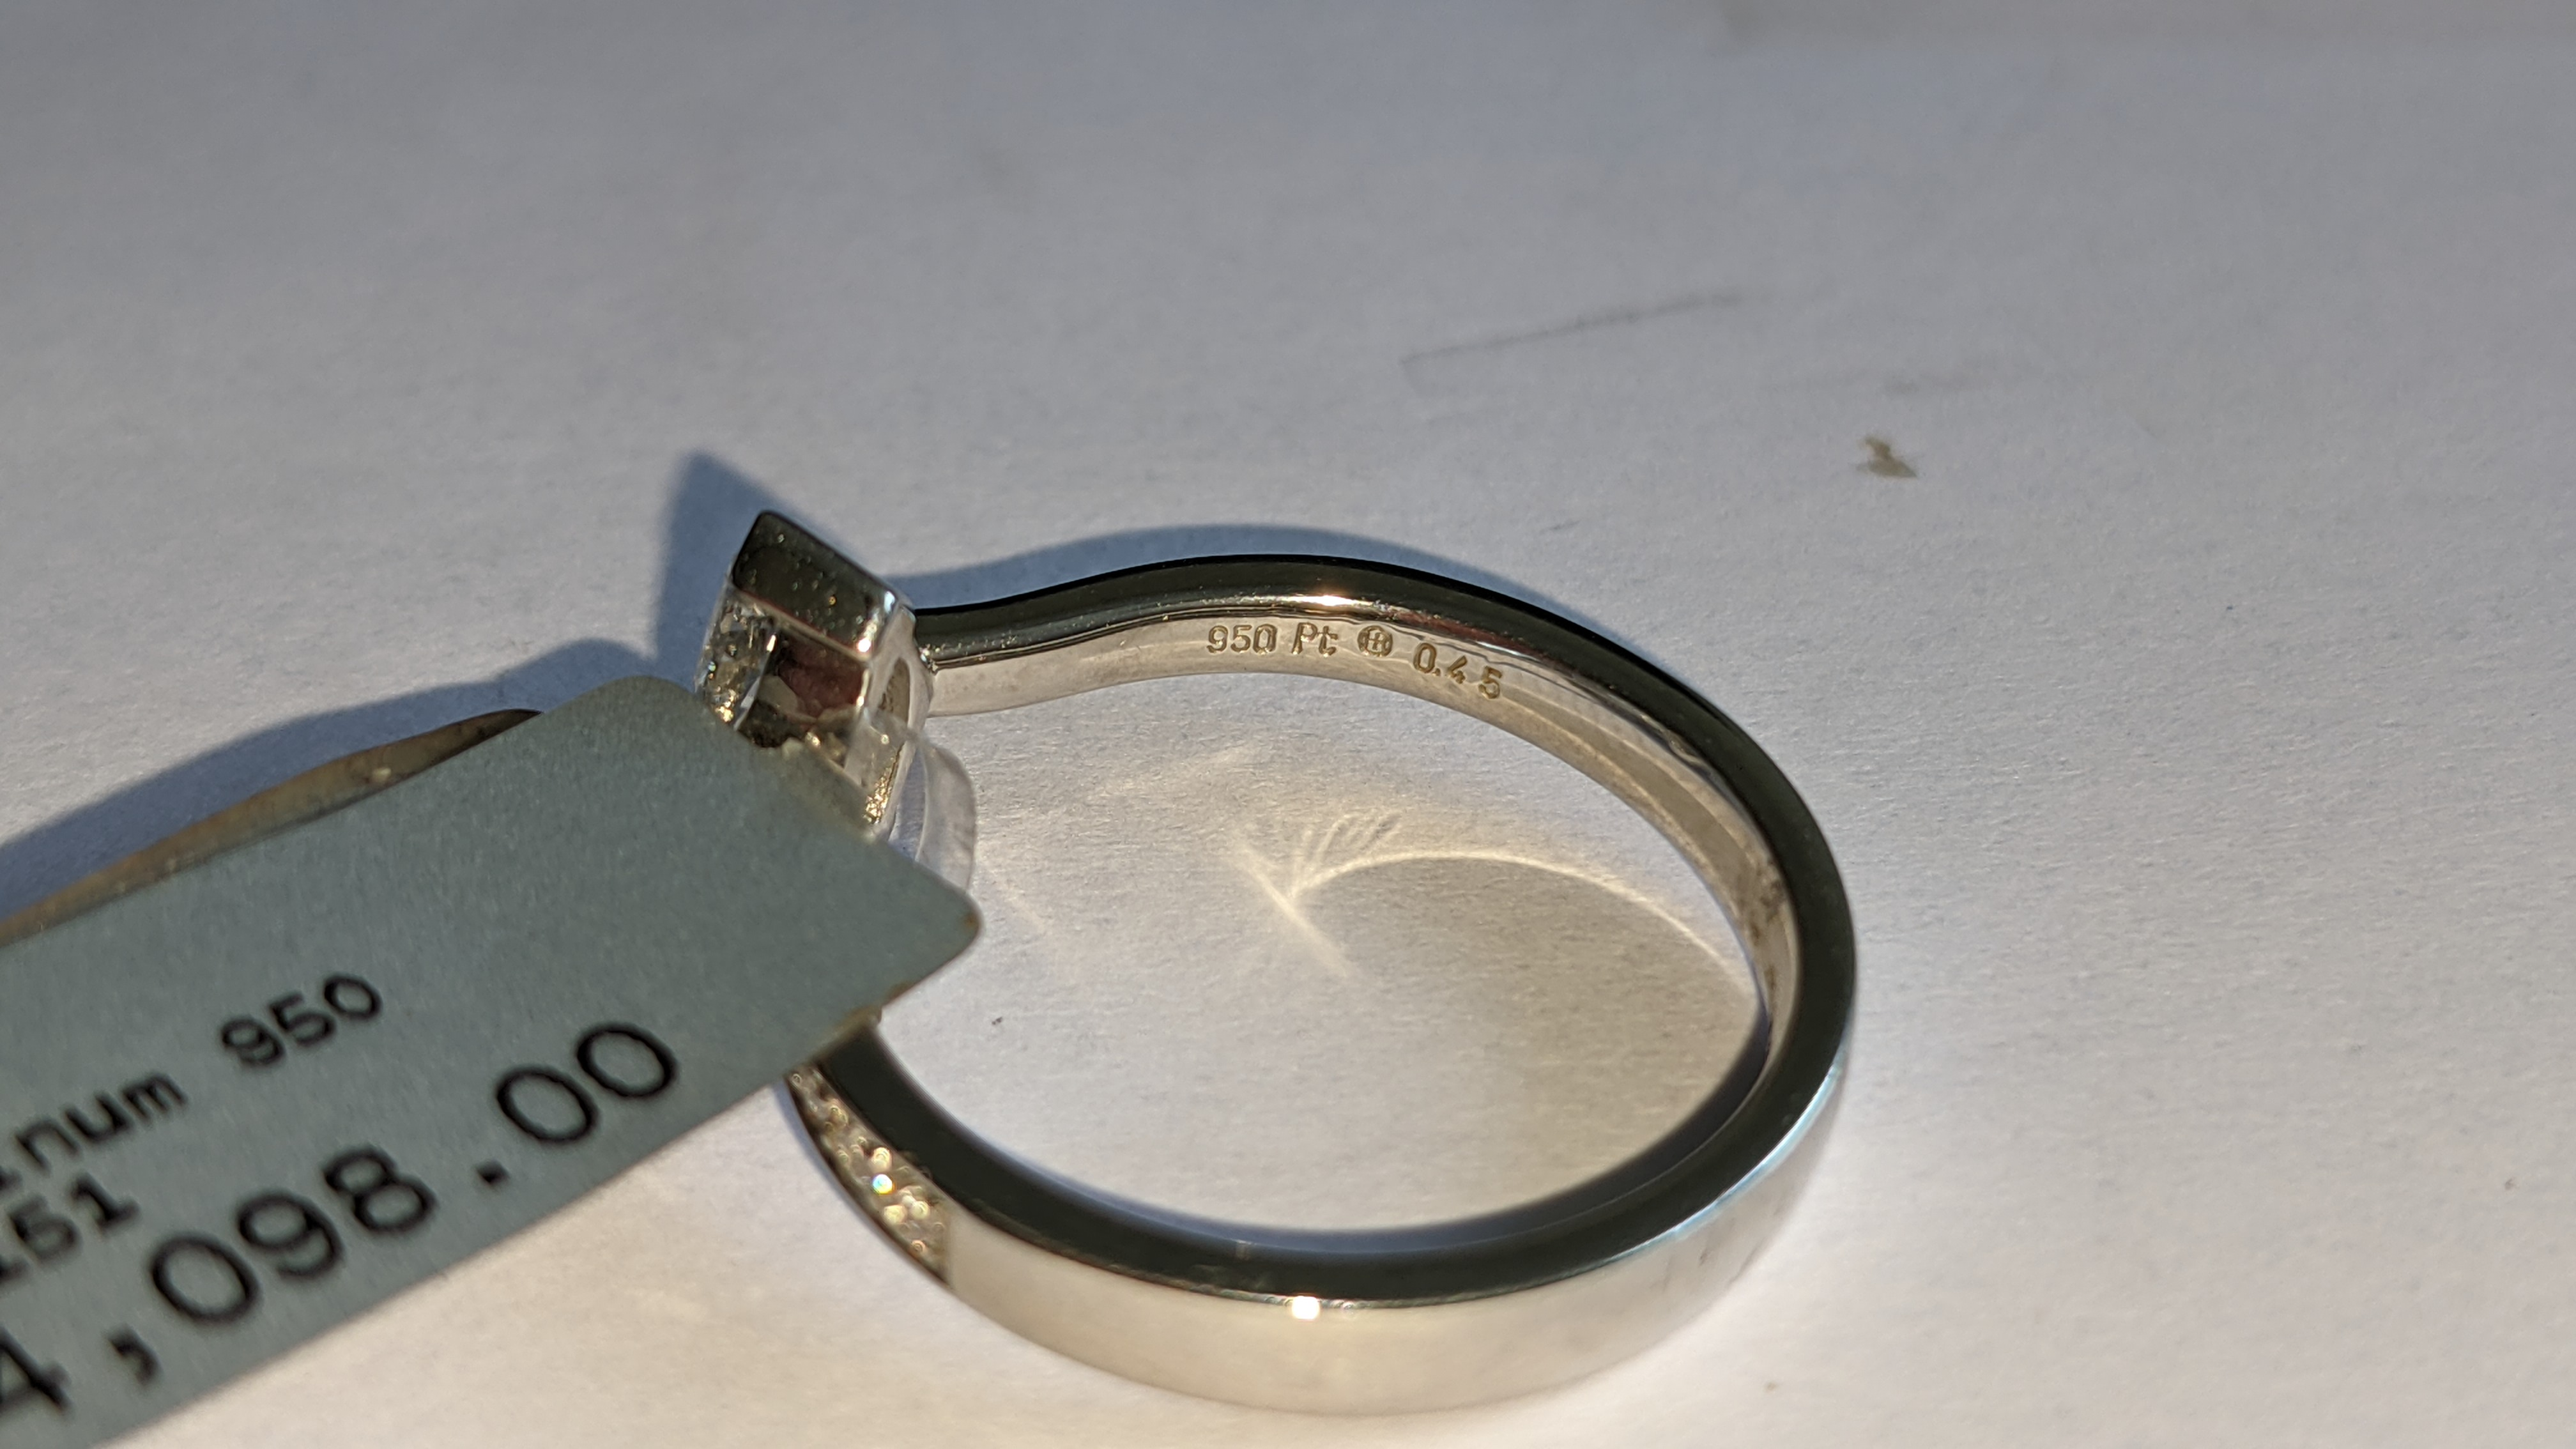 Platinum 950 ring with marquise shaped central diamond plus diamonds on the shoulders either side, t - Image 10 of 16